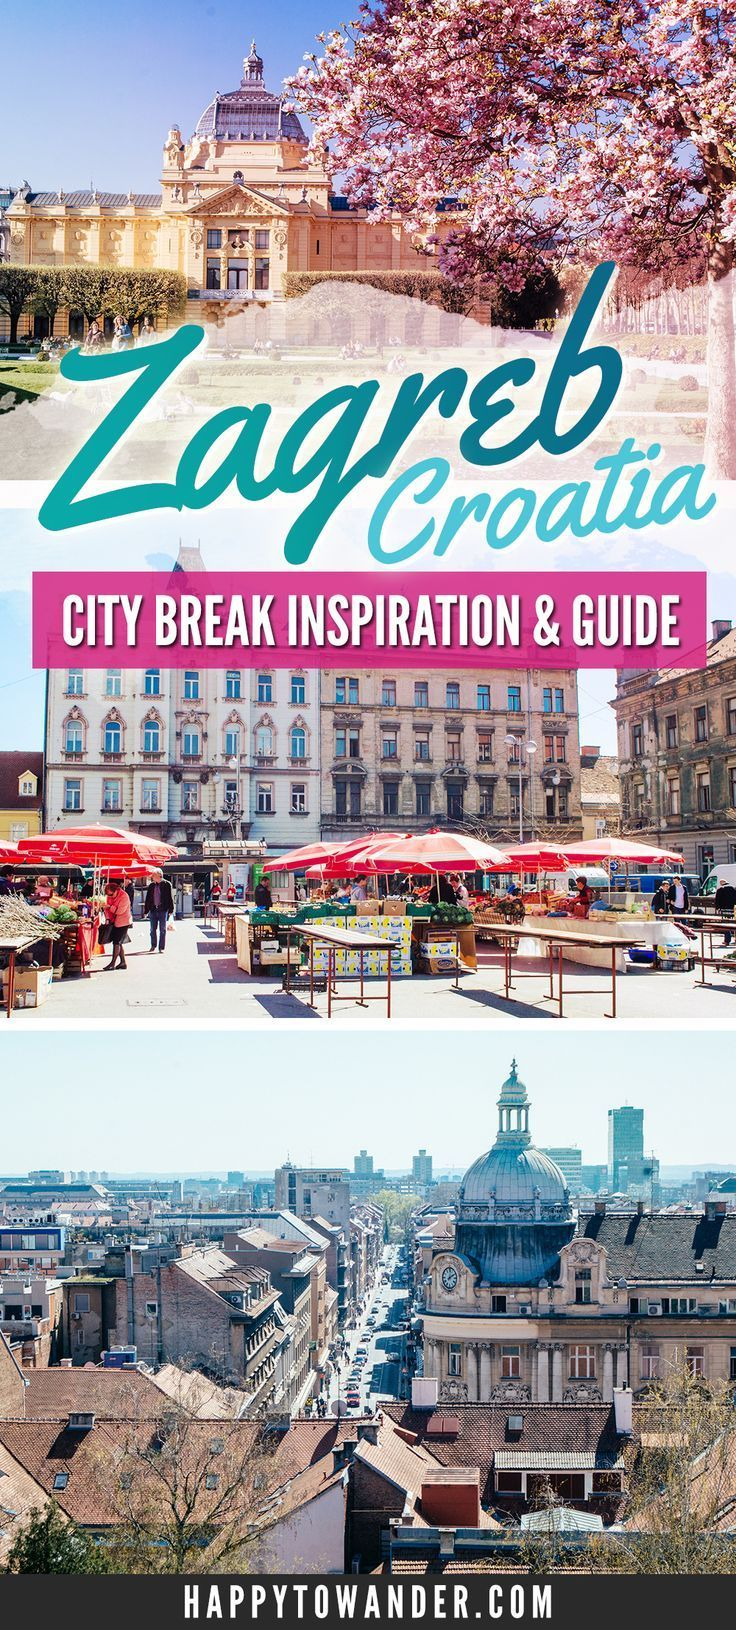 Zagreb Croatia Is An Underrated Gem Ideal For A City Break Here S Why Zagreb Is Worth A Visit And Some Inspirati Croatia Travel Europe Travel Culture Travel